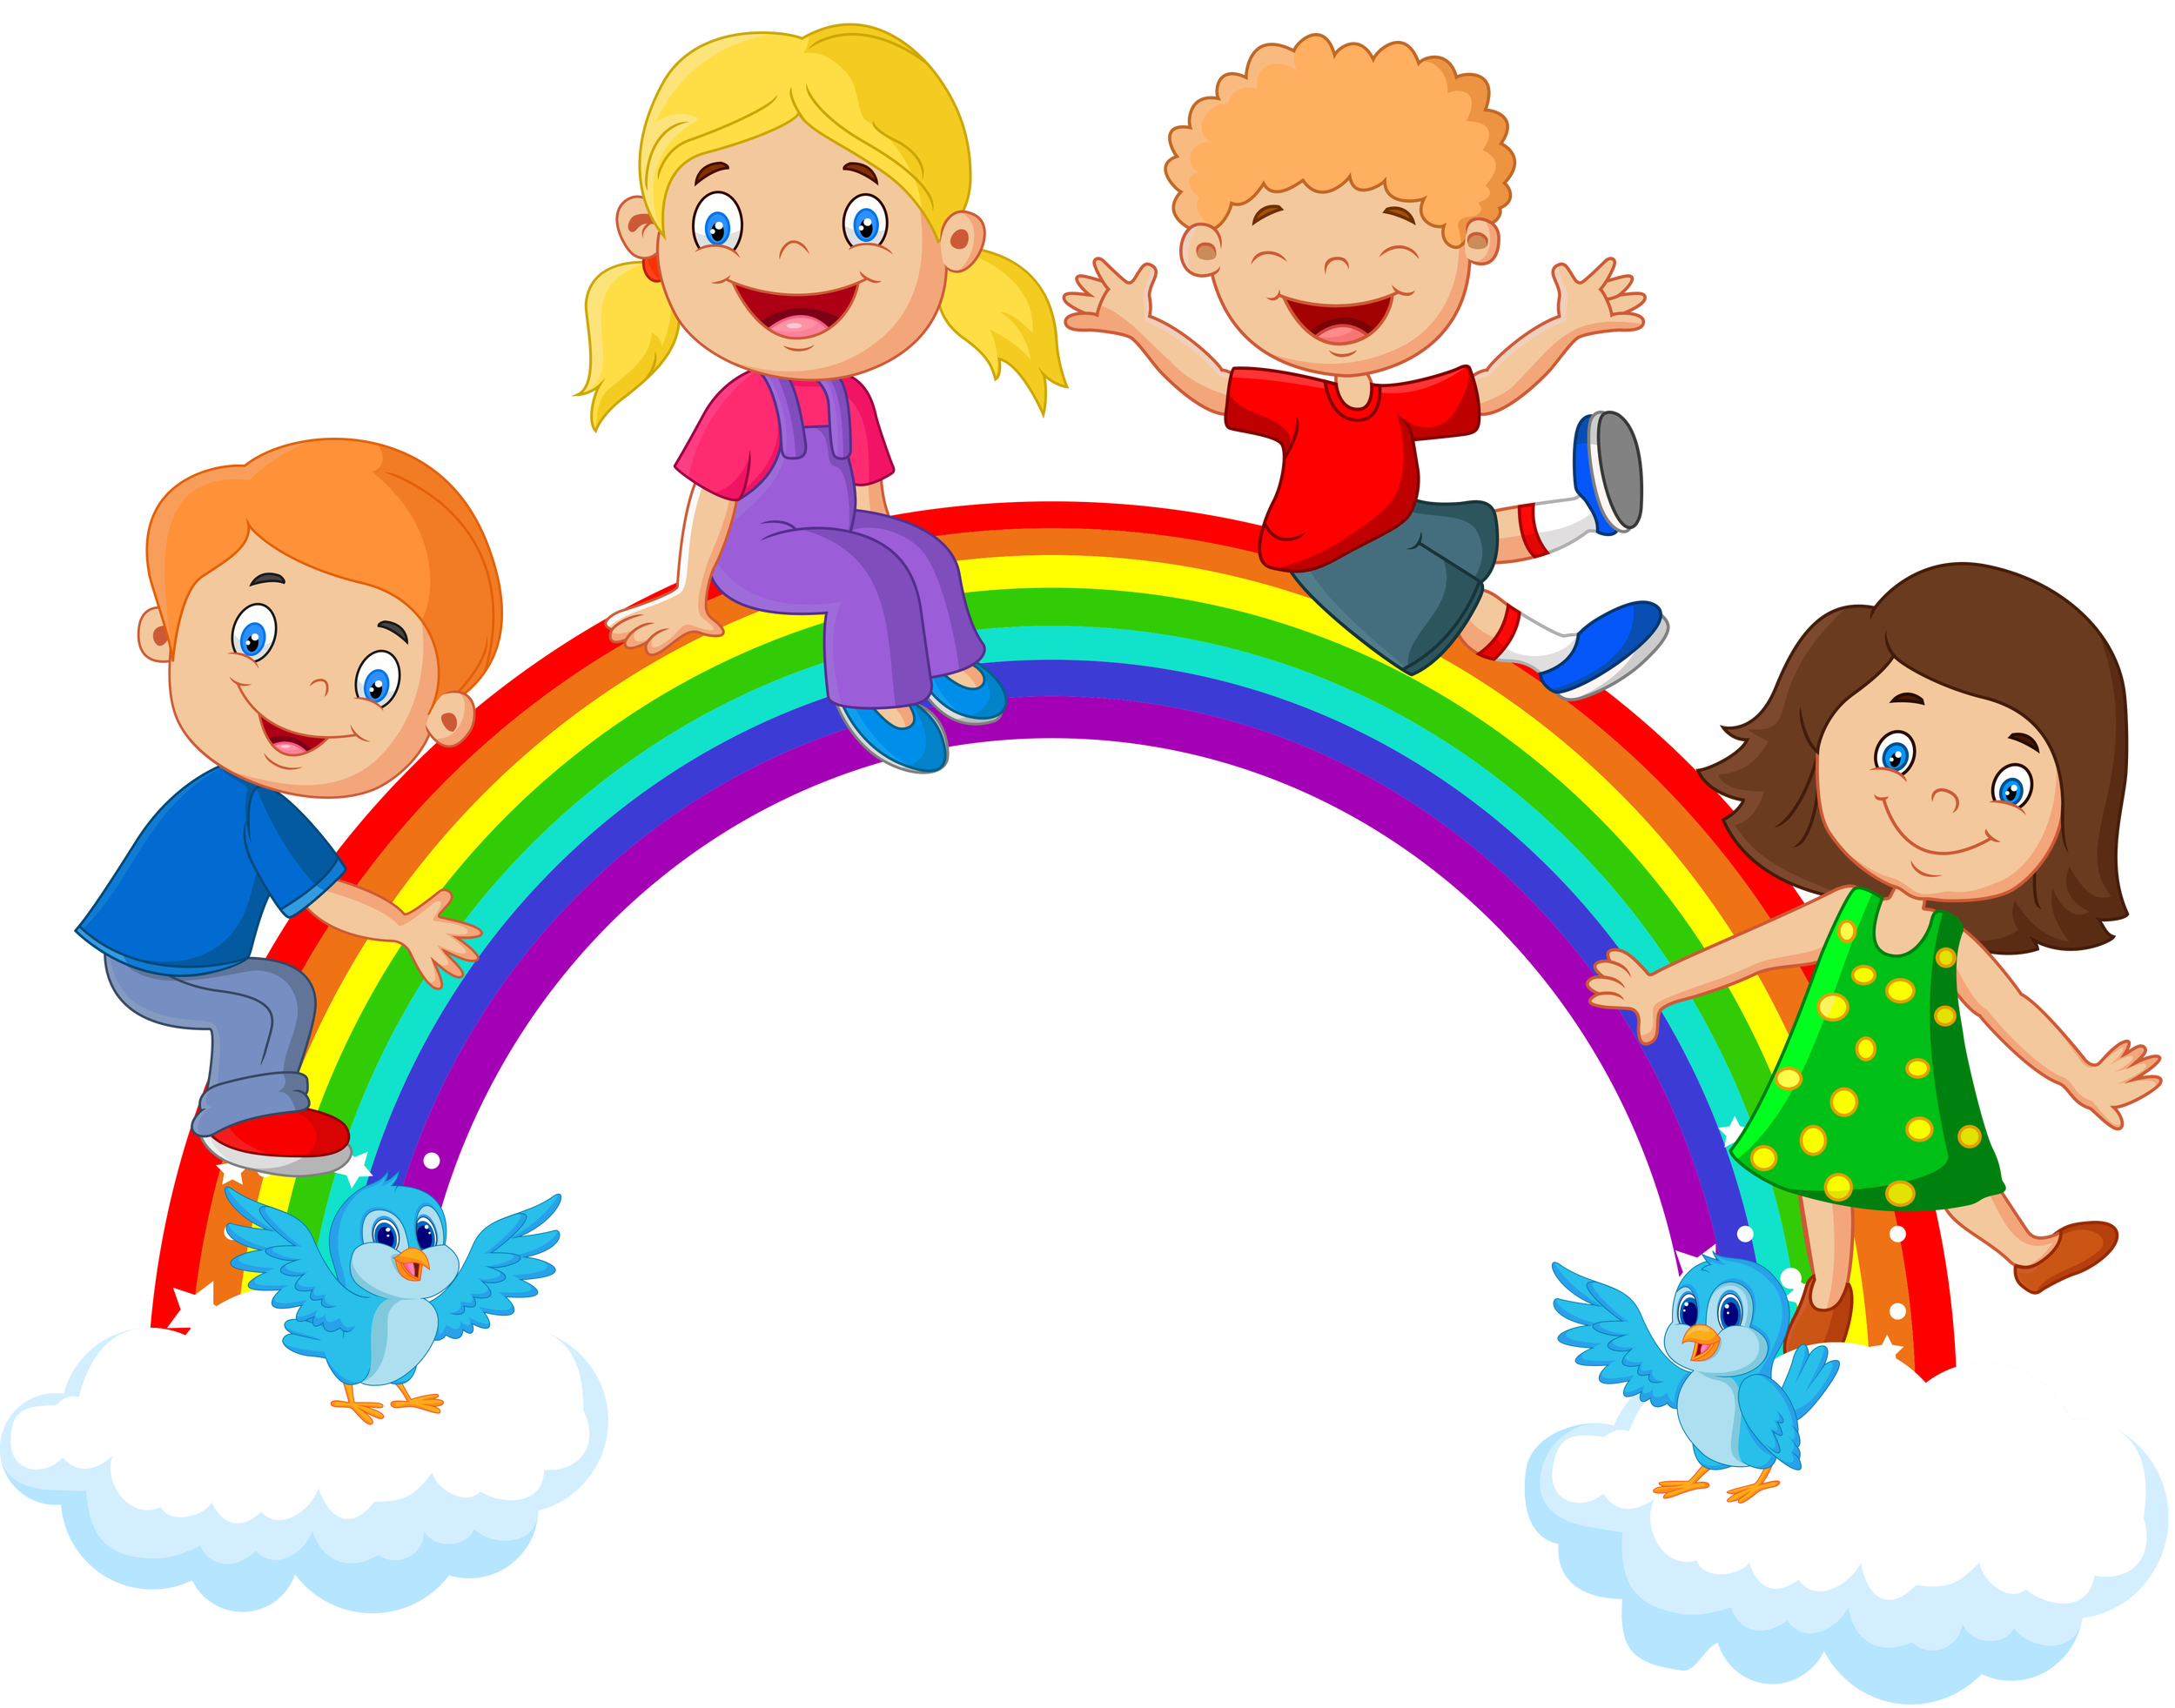 Sunday school clipart children clip freeuse library Переклади та сочинялки, том 3. - Страница 13 | Рамочки | Pinterest ... clip freeuse library